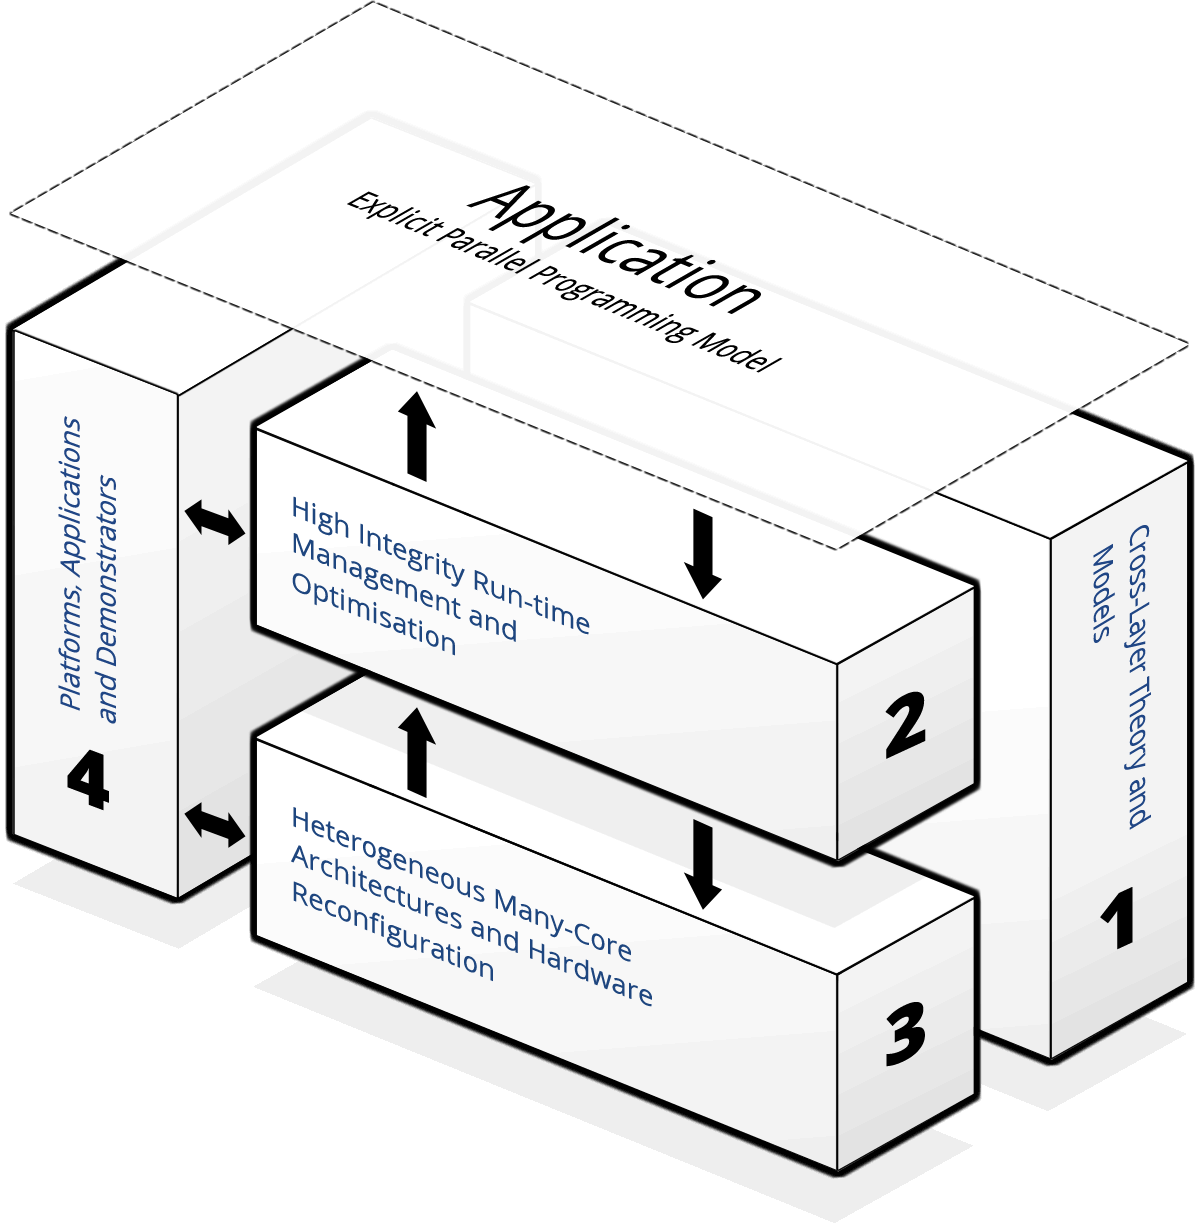 Research Themes Diagram